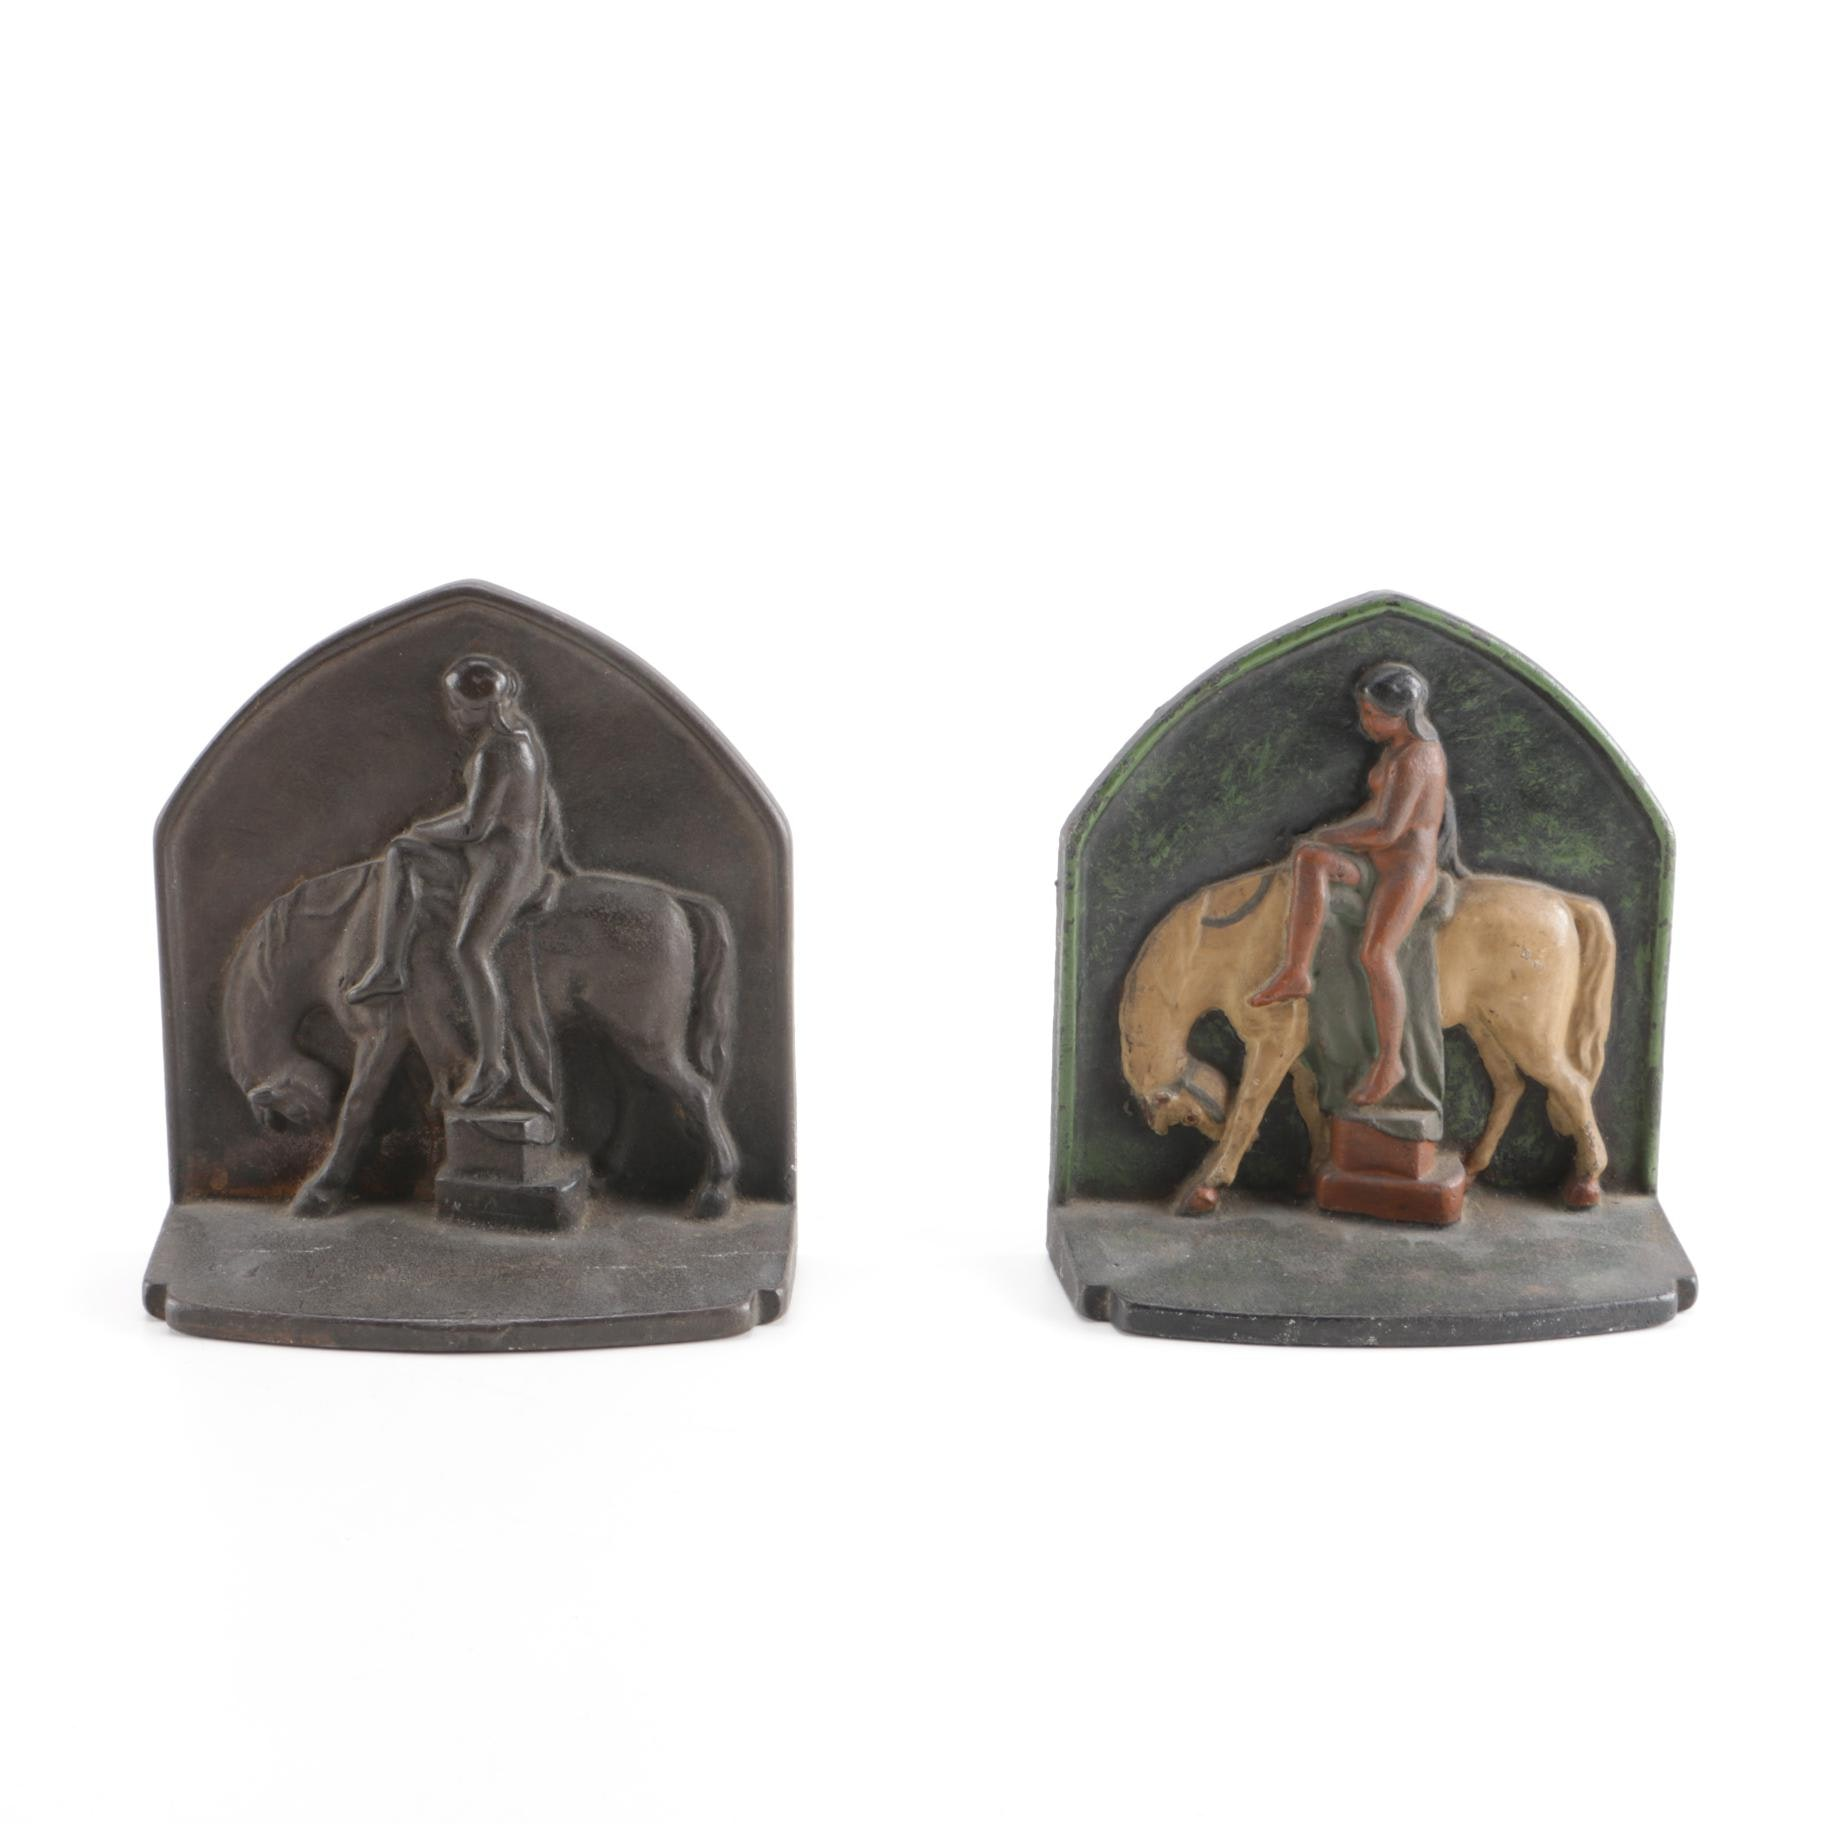 Southwestern-Style Cast Iron Bookends